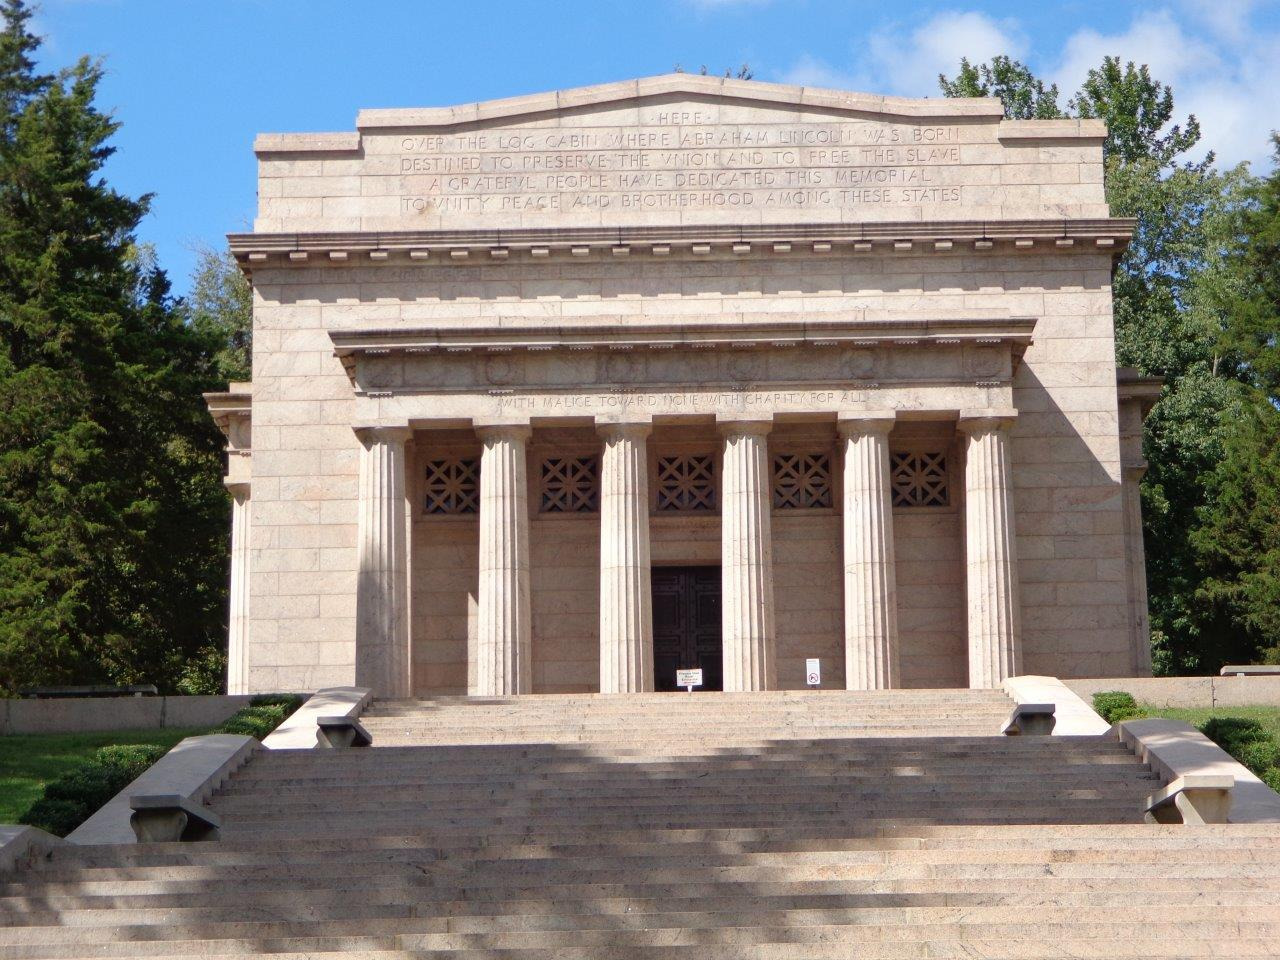 photo of Abraham Lincoln birthplace memorial building